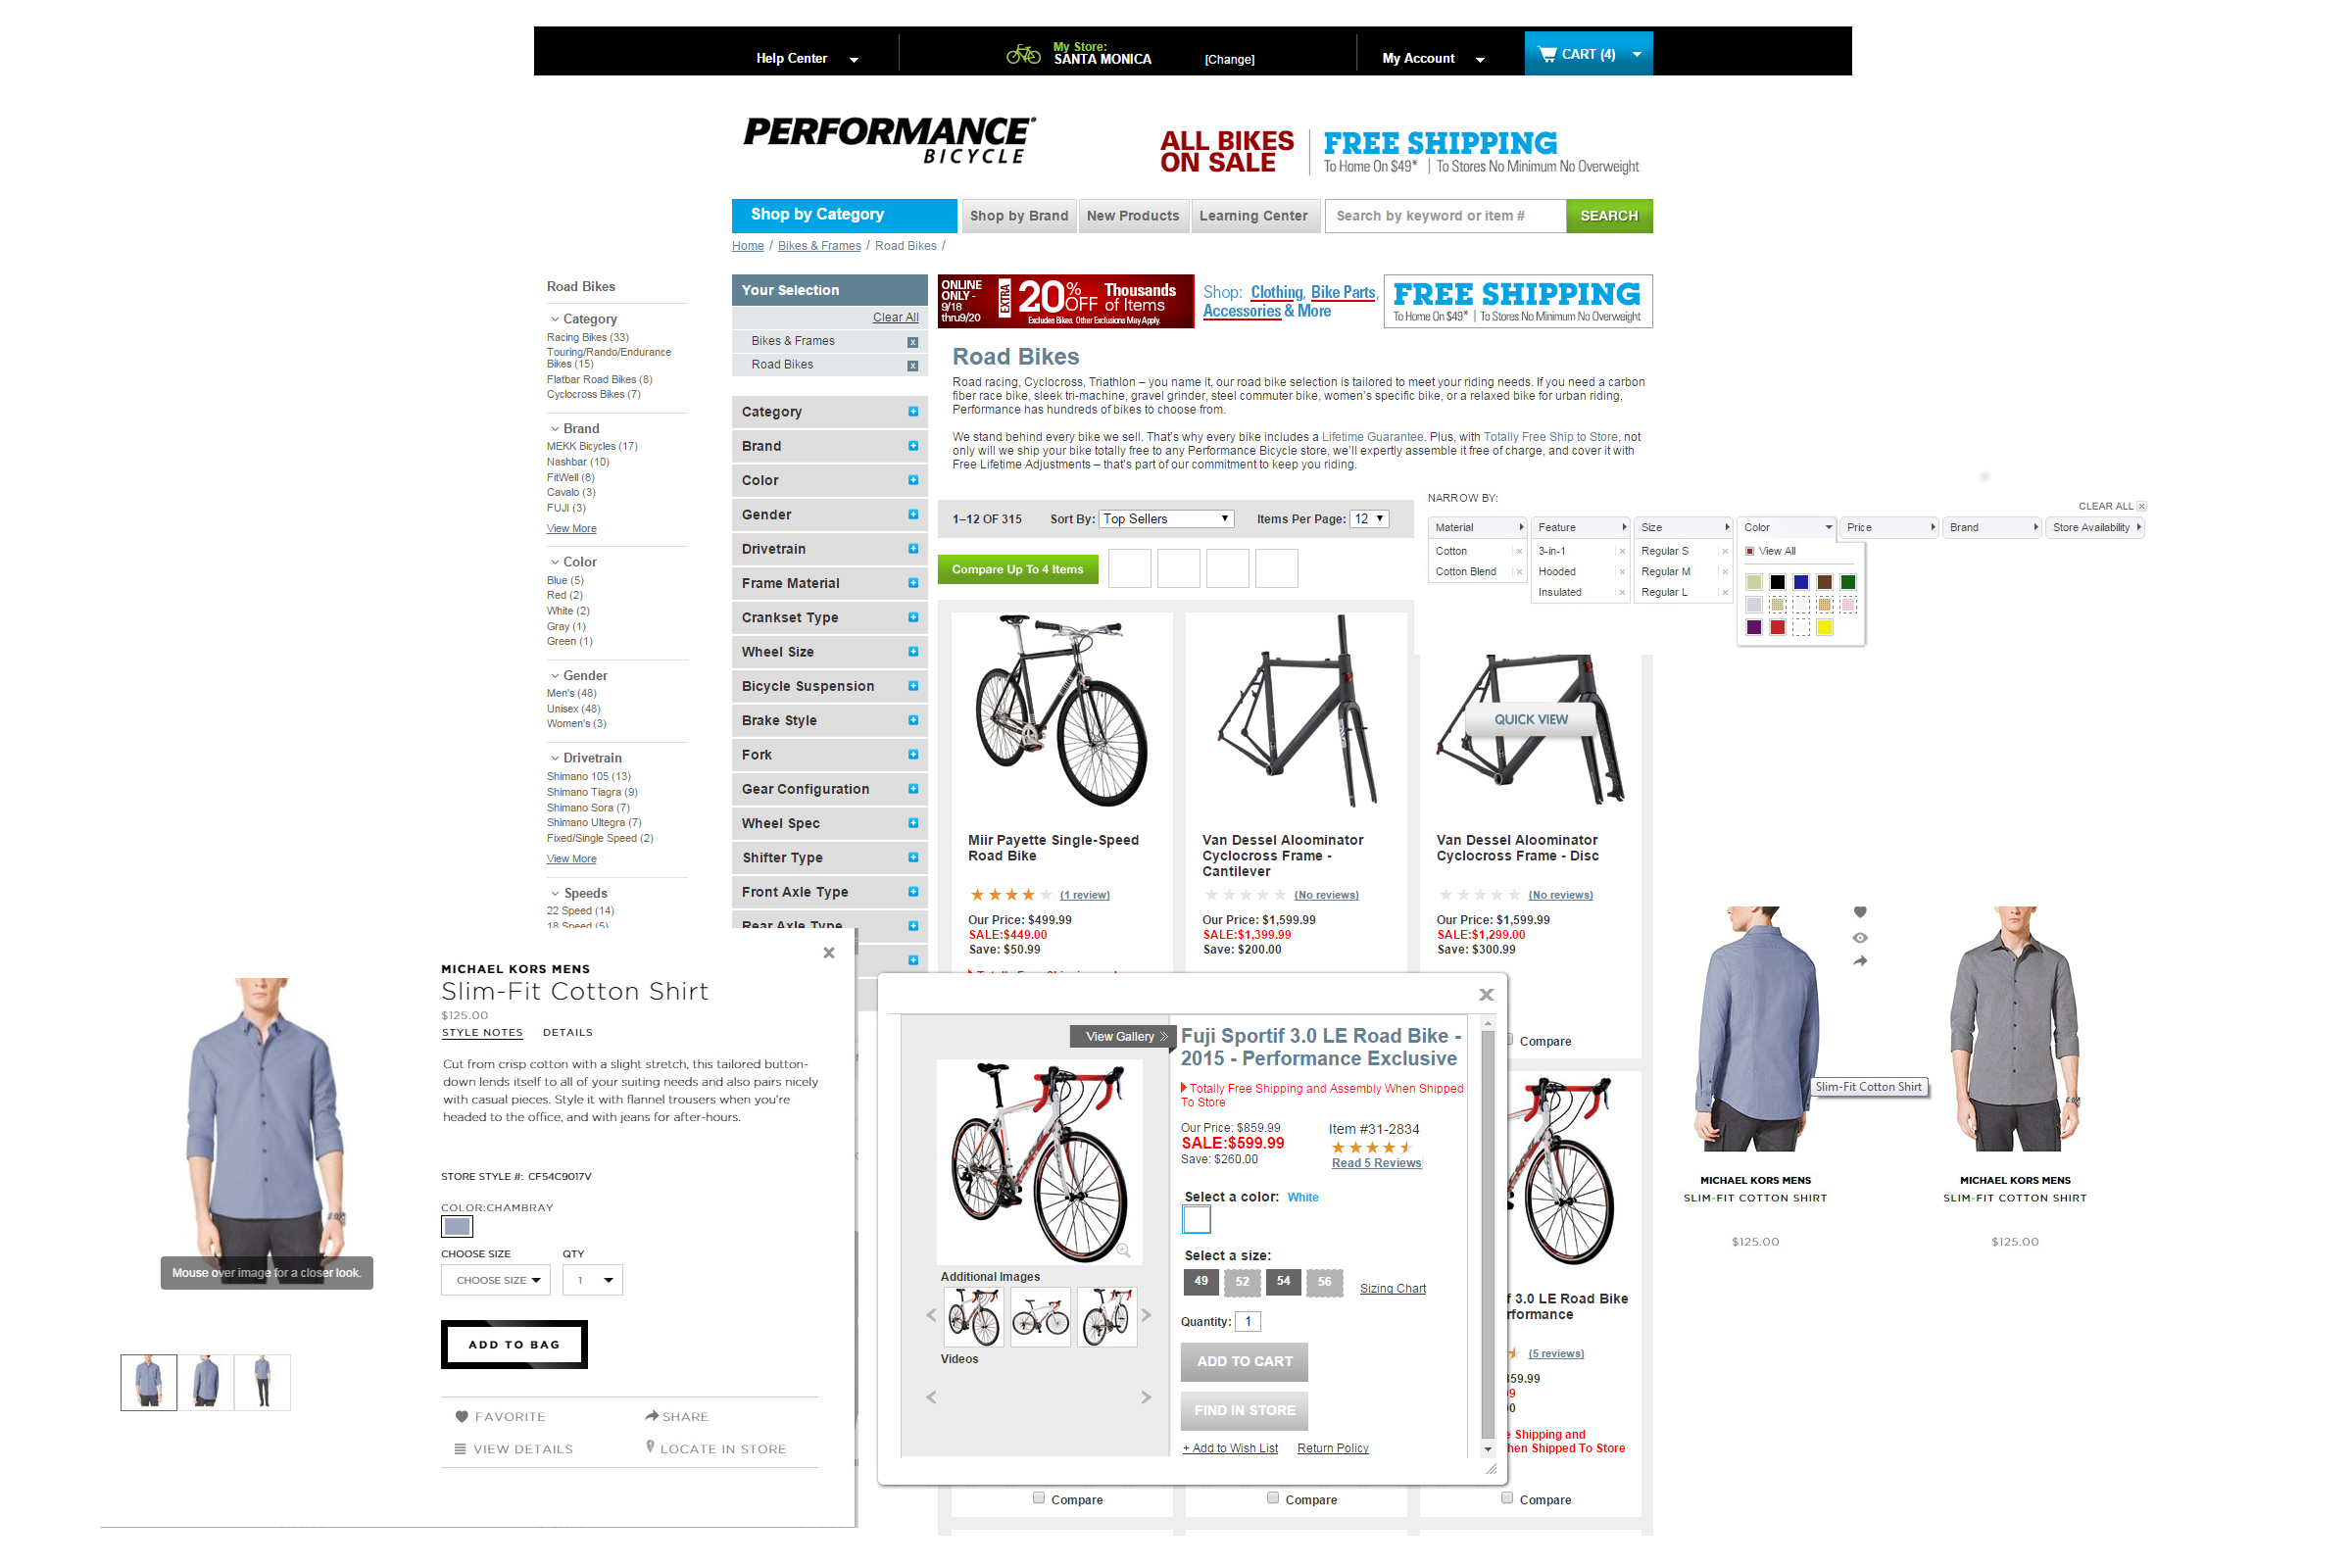 Clockwise from left: Michael Kors quickview, Nashbar left sidebar, Nordstrom filtering, Michael Kors product list. Middle: Performance Bicycle quickview popup. Background: Performance Bicycle product listing.